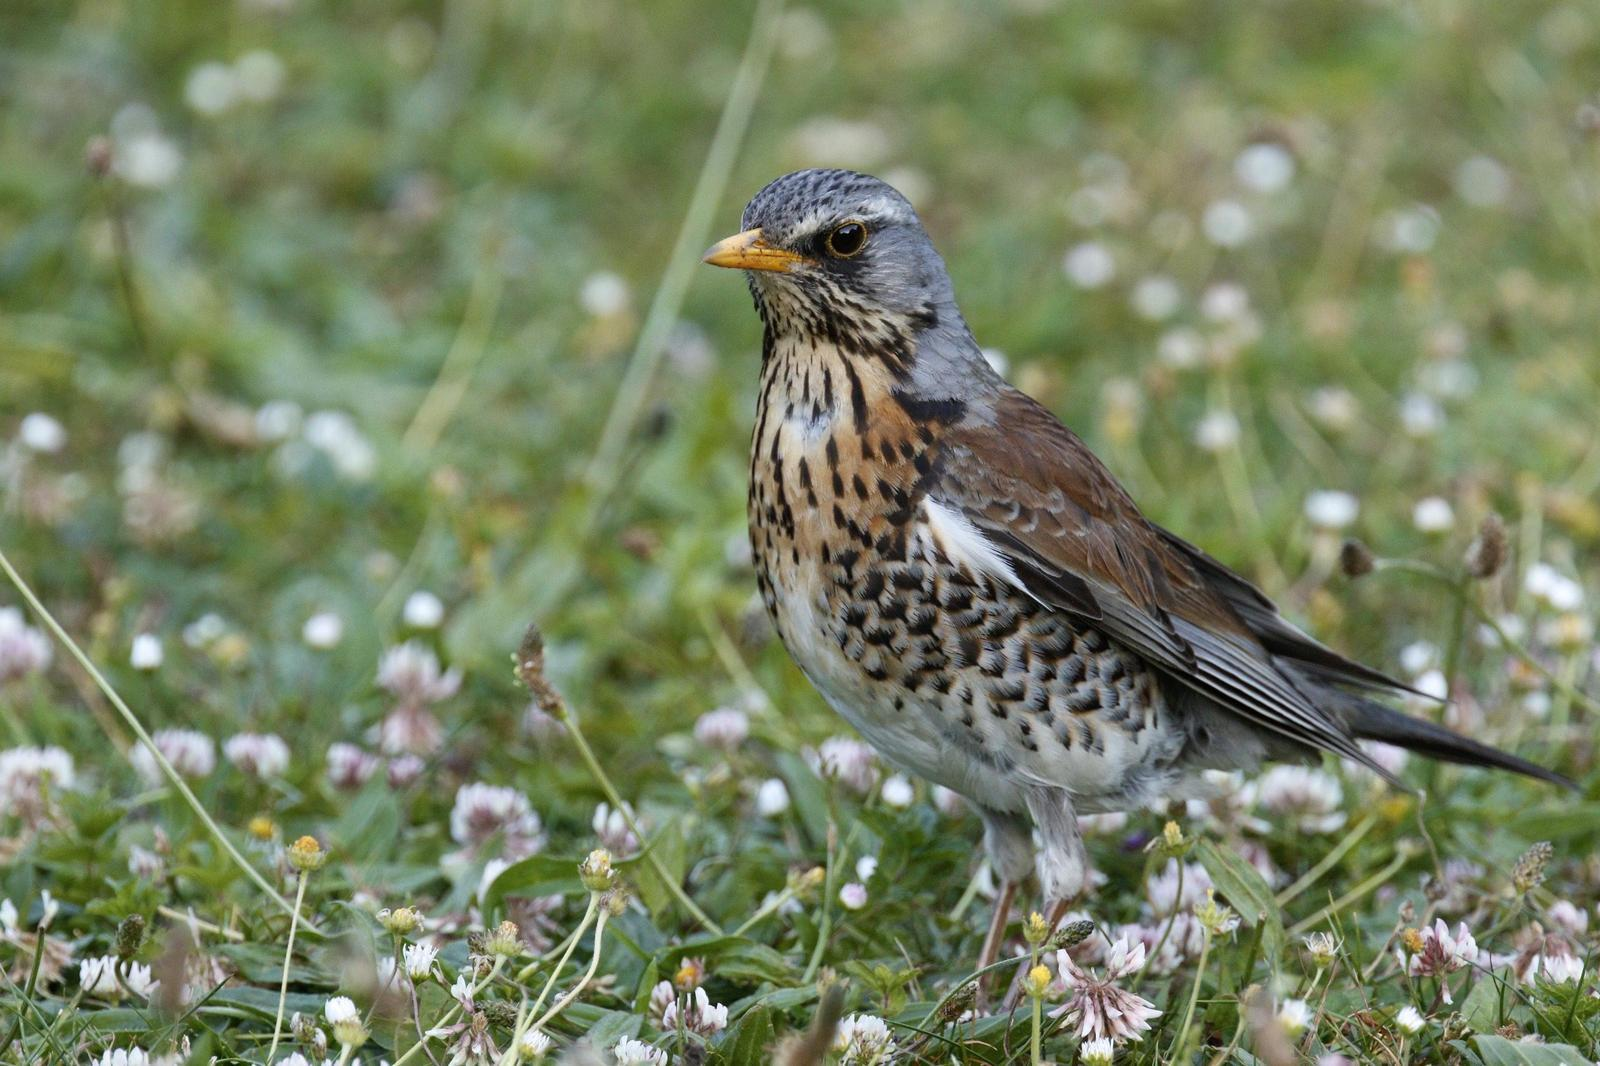 Fieldfare Photo by Emily Willoughby